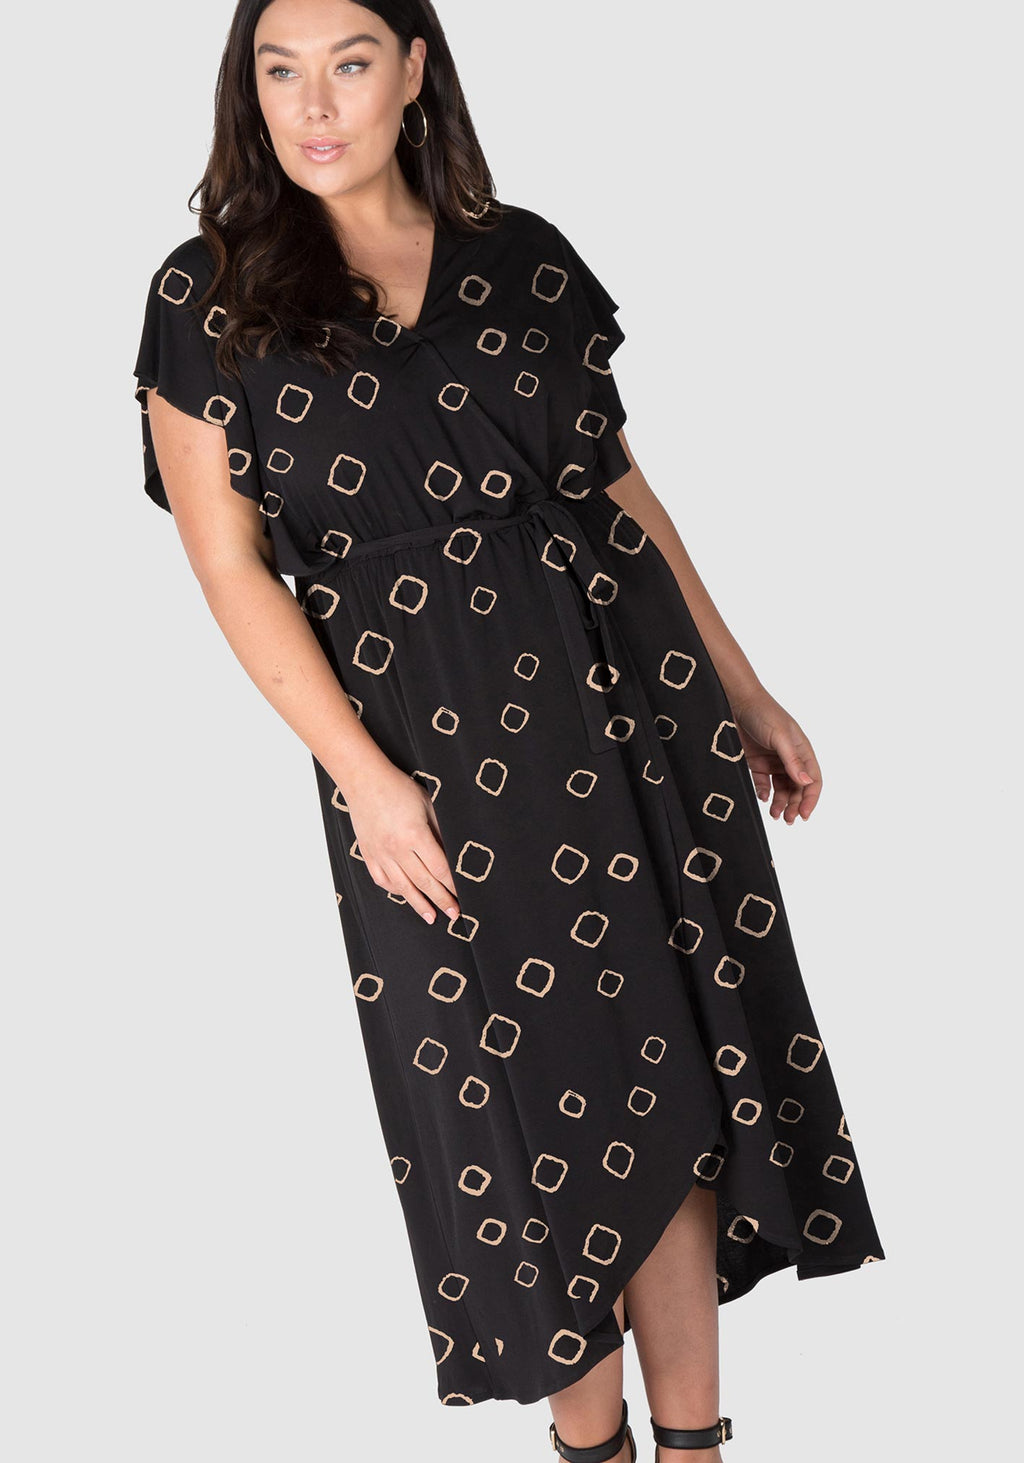 Shine Like A Diamond Knit Maxi Dress - Black/Rose Gold